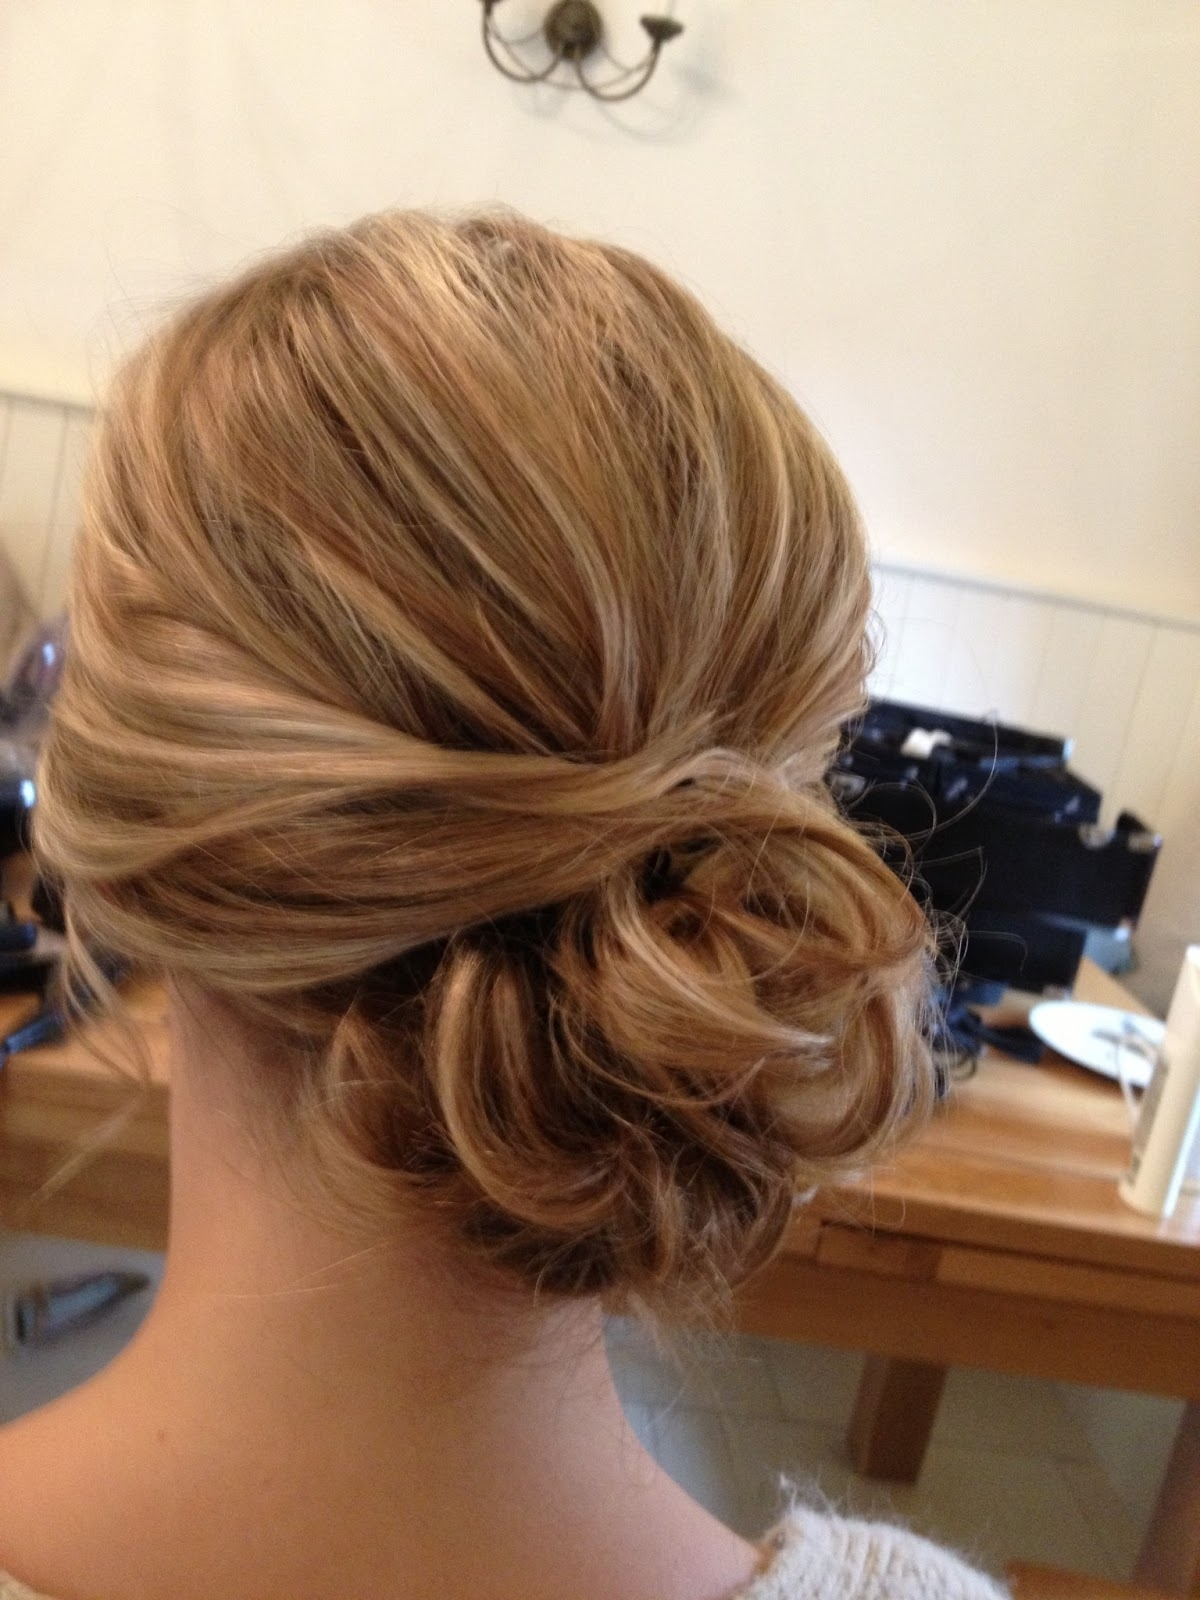 Low Bun Wedding Hairstyle (View 6 of 15)